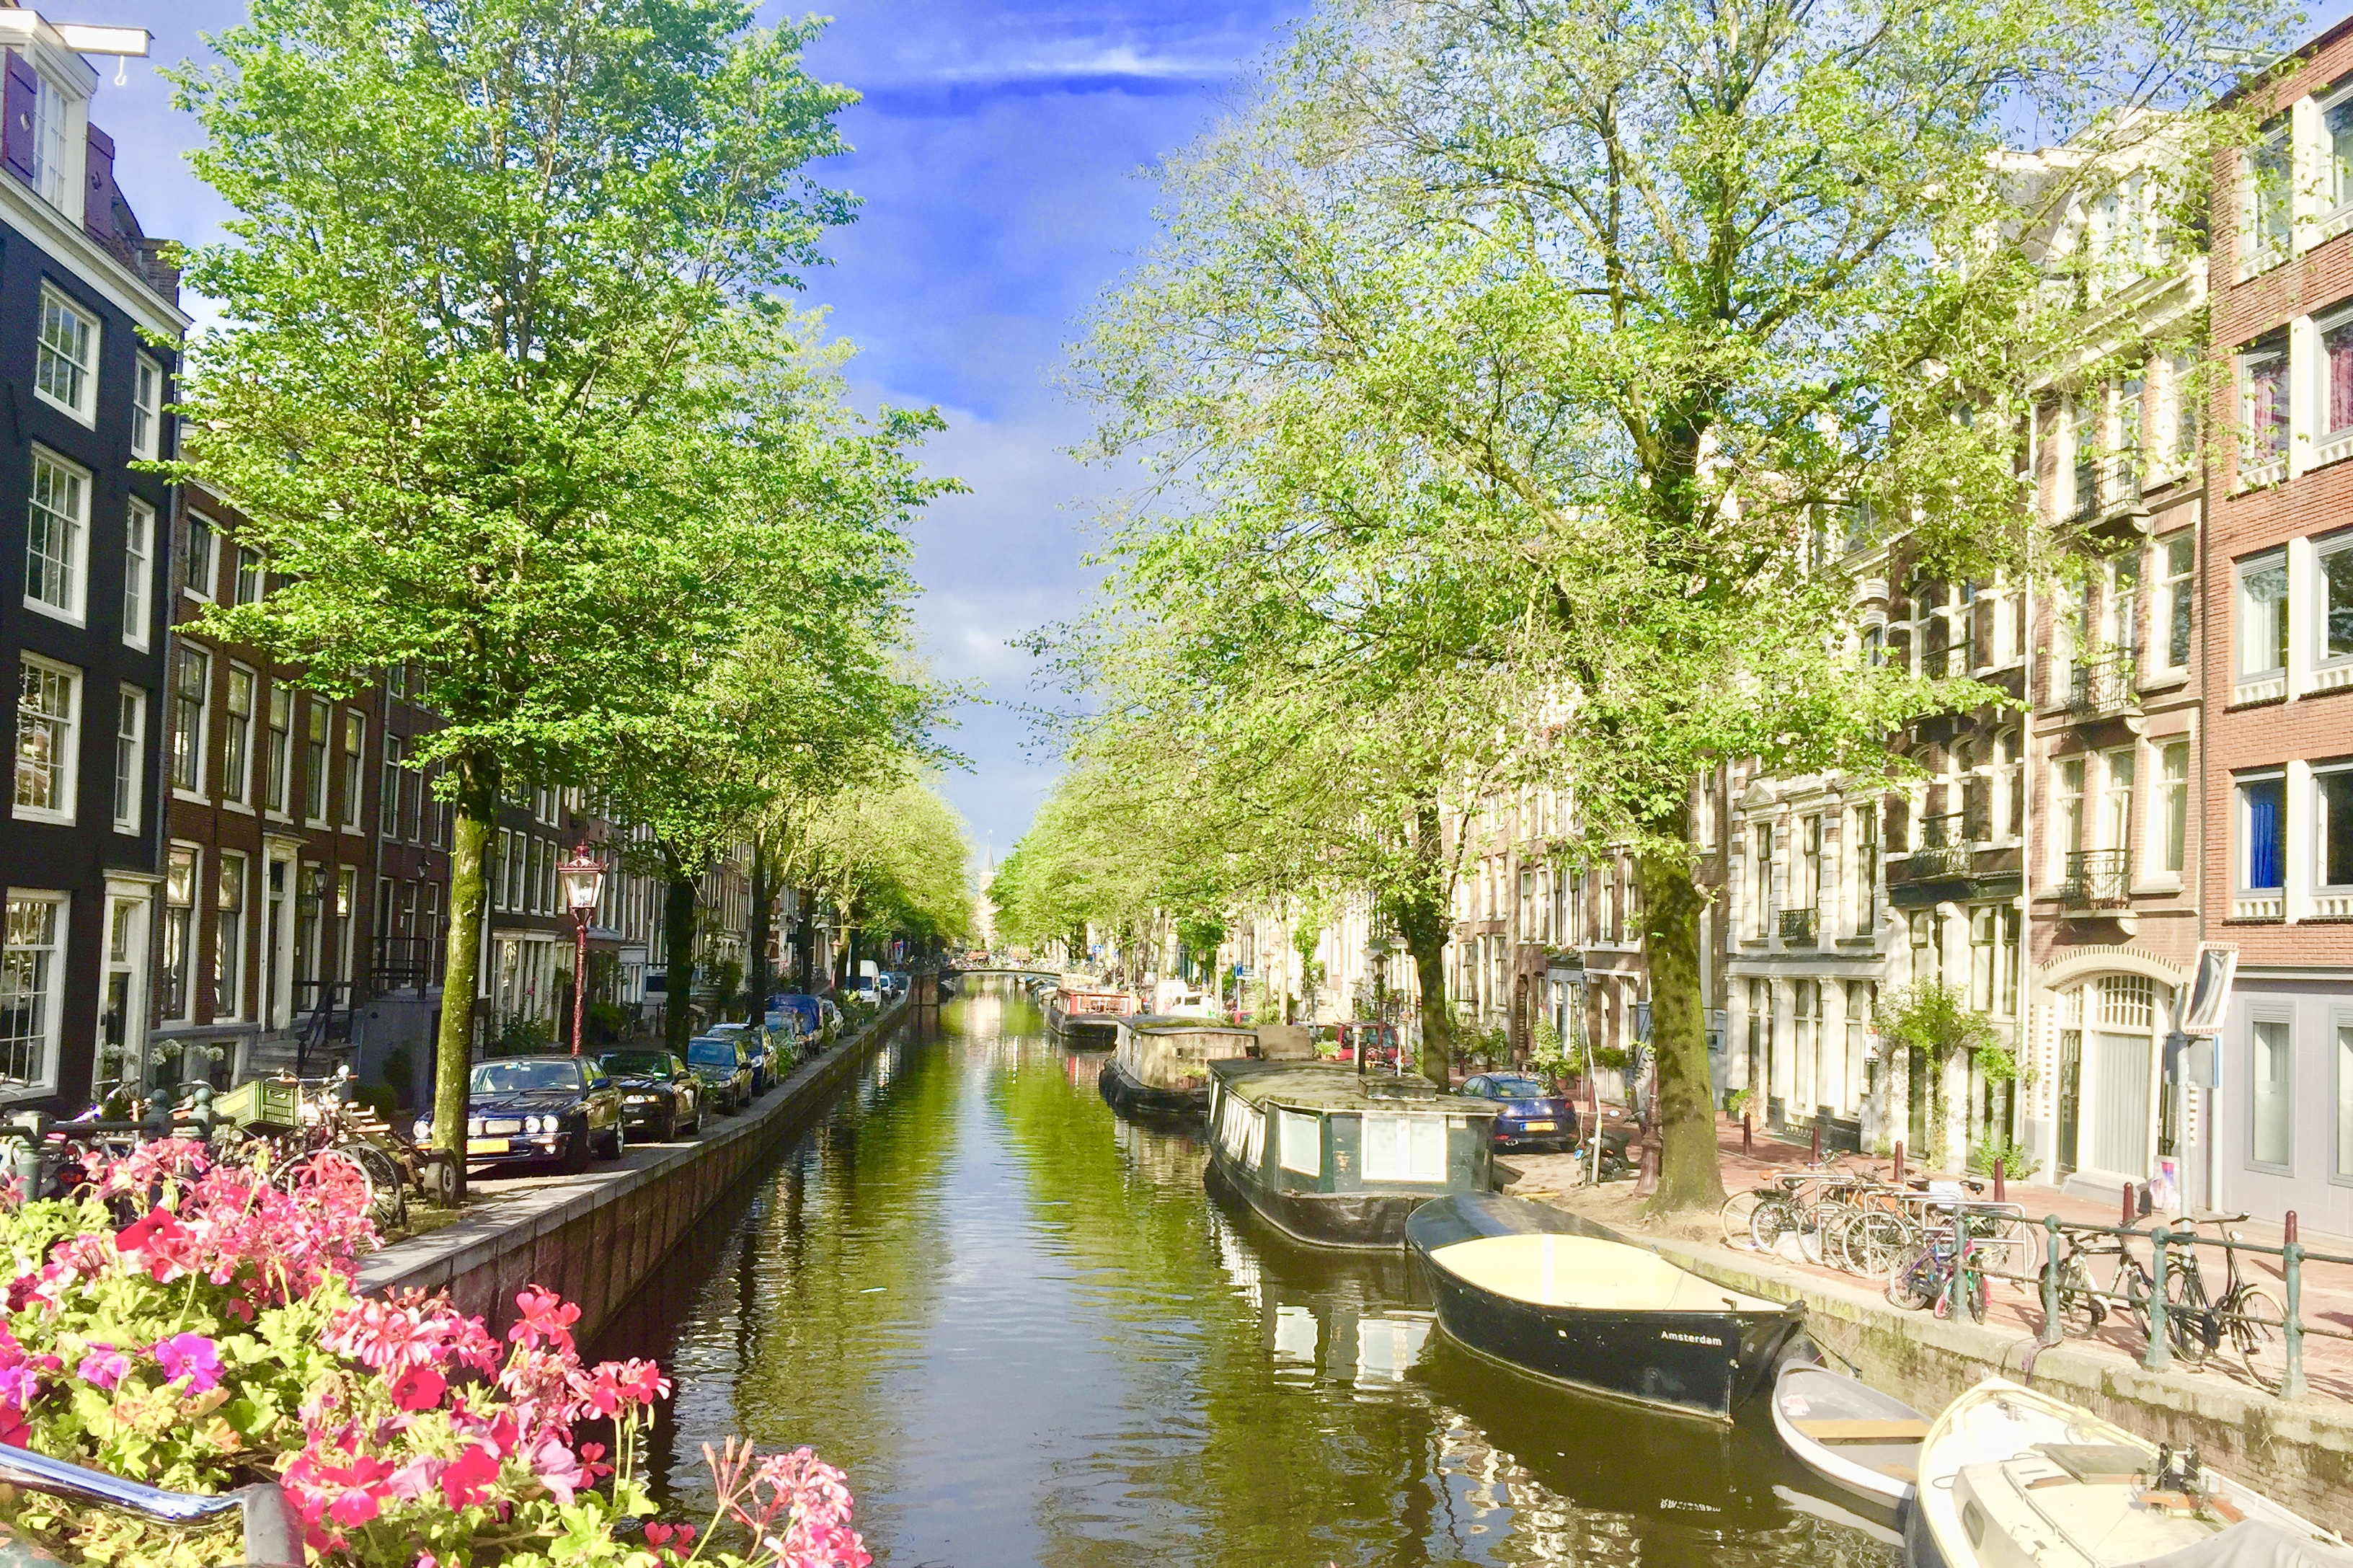 Canal, boats and house in Amsterdam